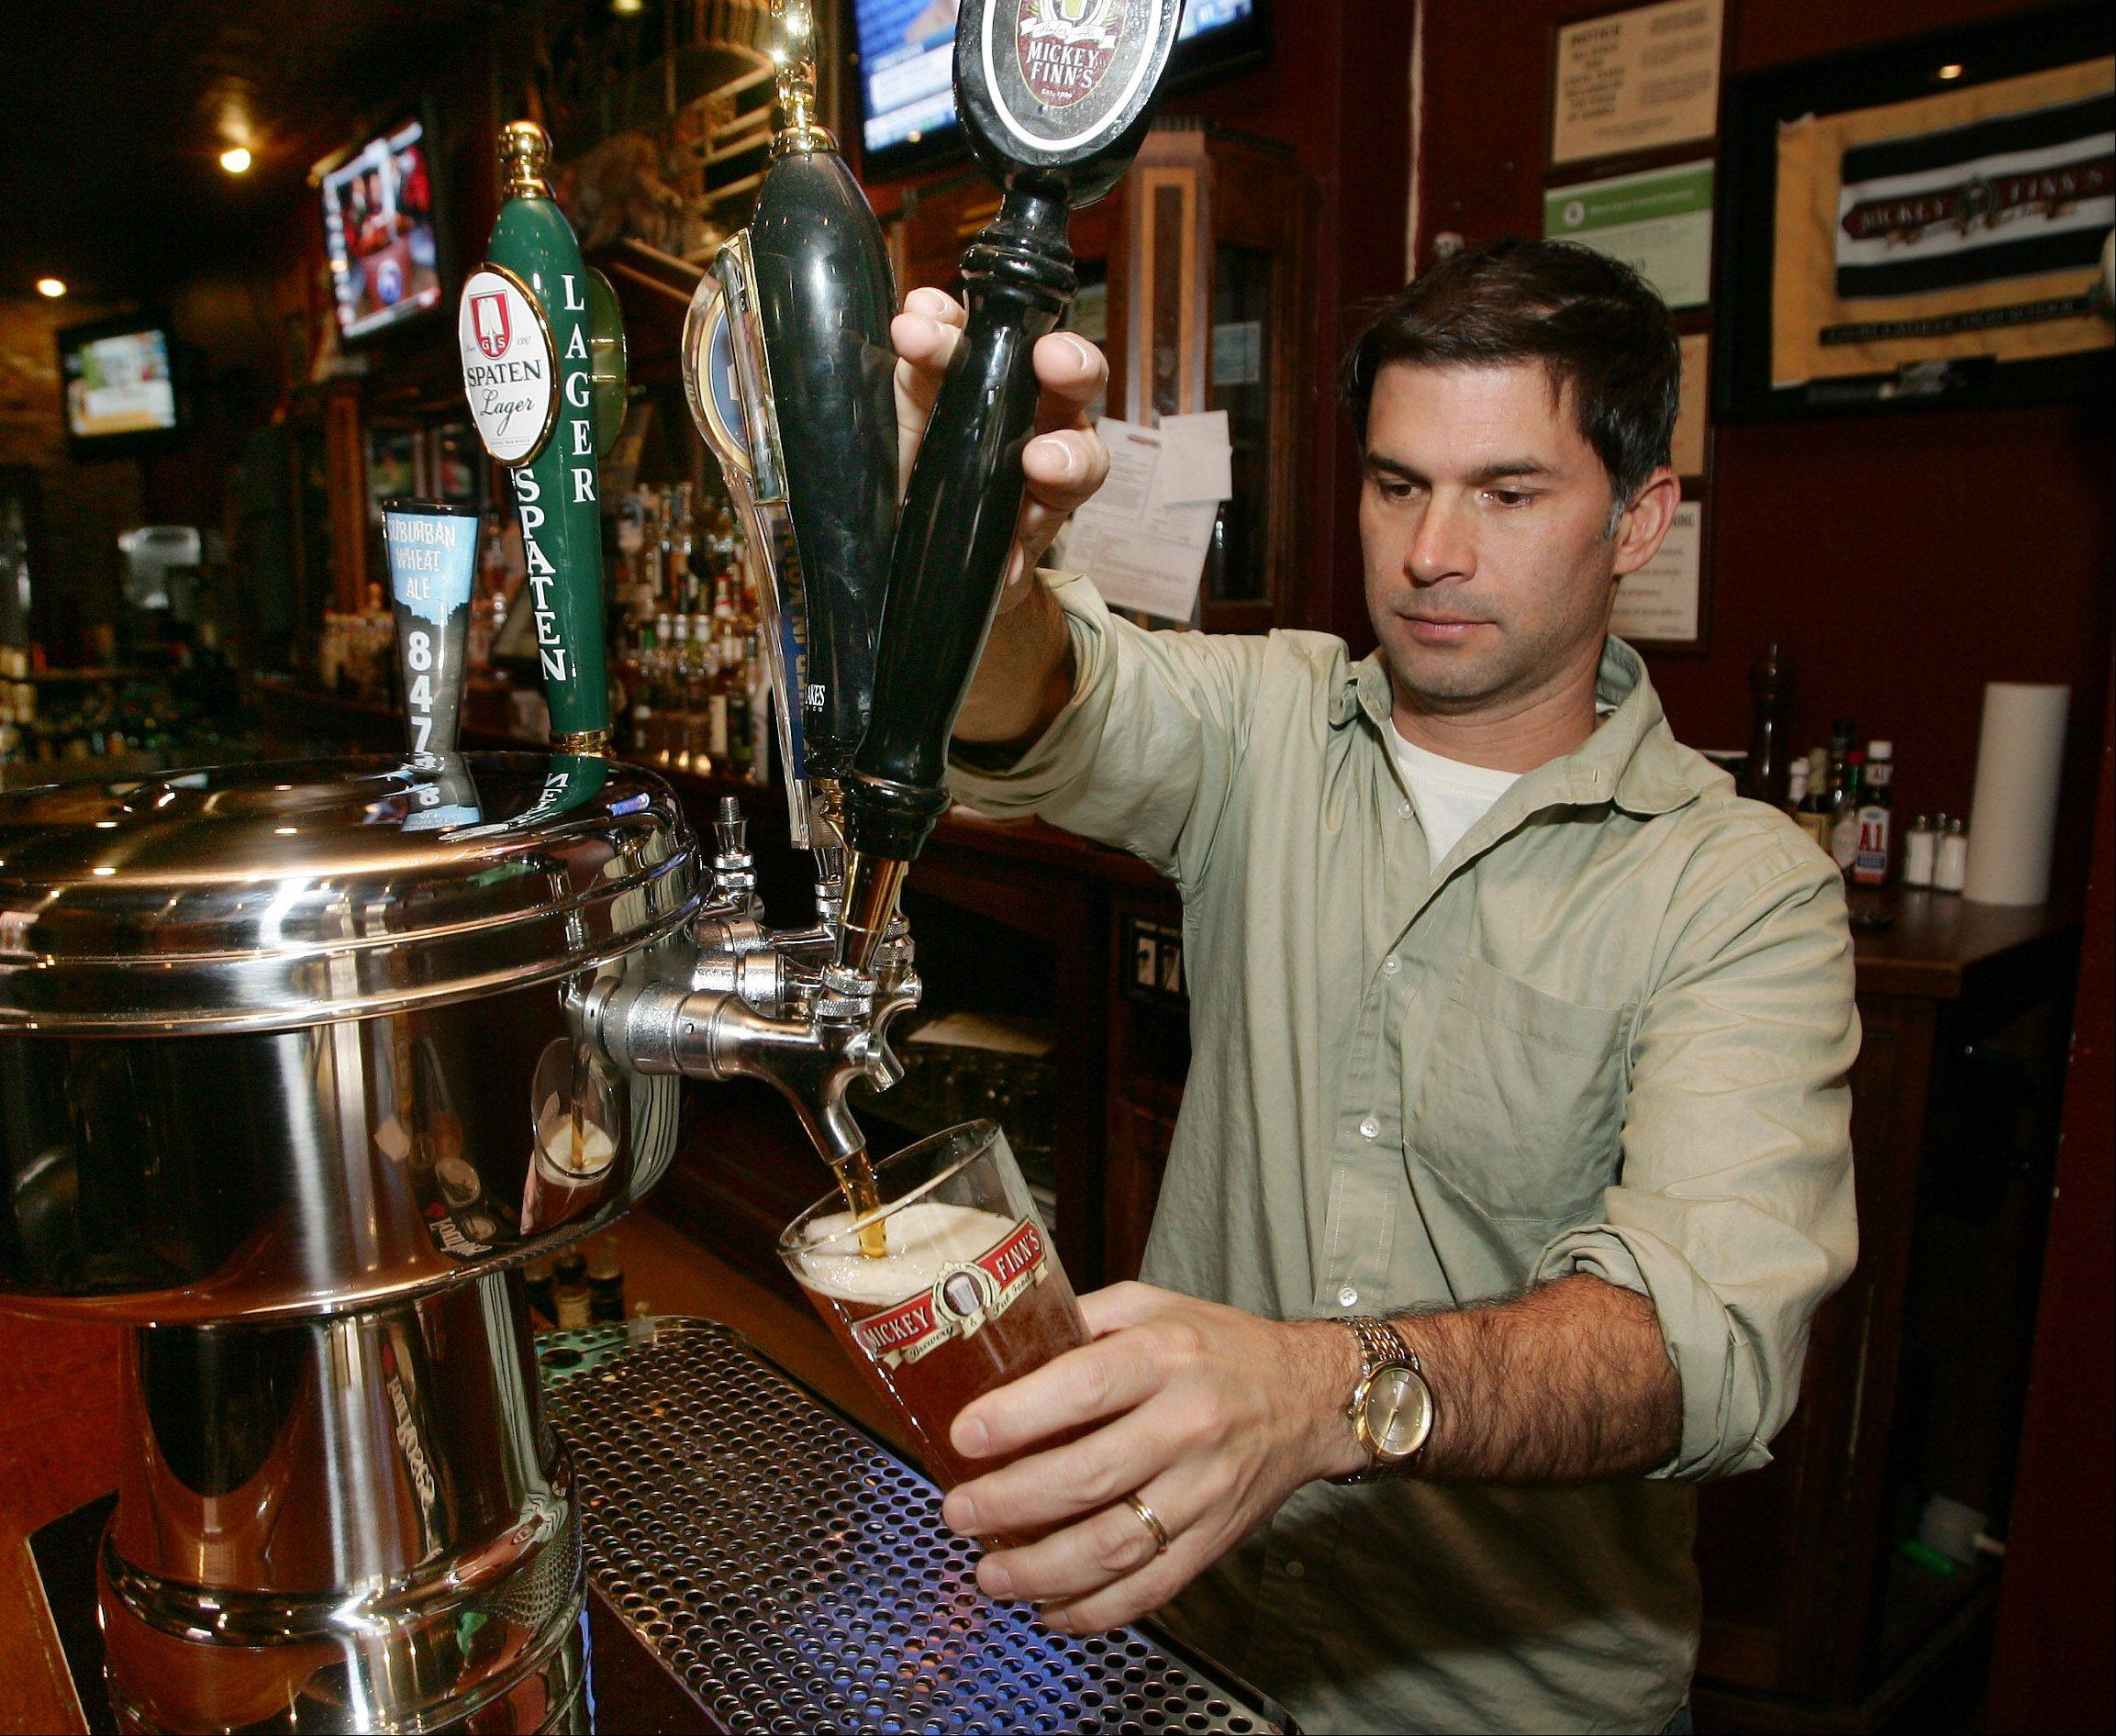 The beer will flow Wednesday at Mickey Finn's in Libertyville. Brew pub owner Brian Grano says Thanksgiving Eve is one of the biggest bar nights of the year.